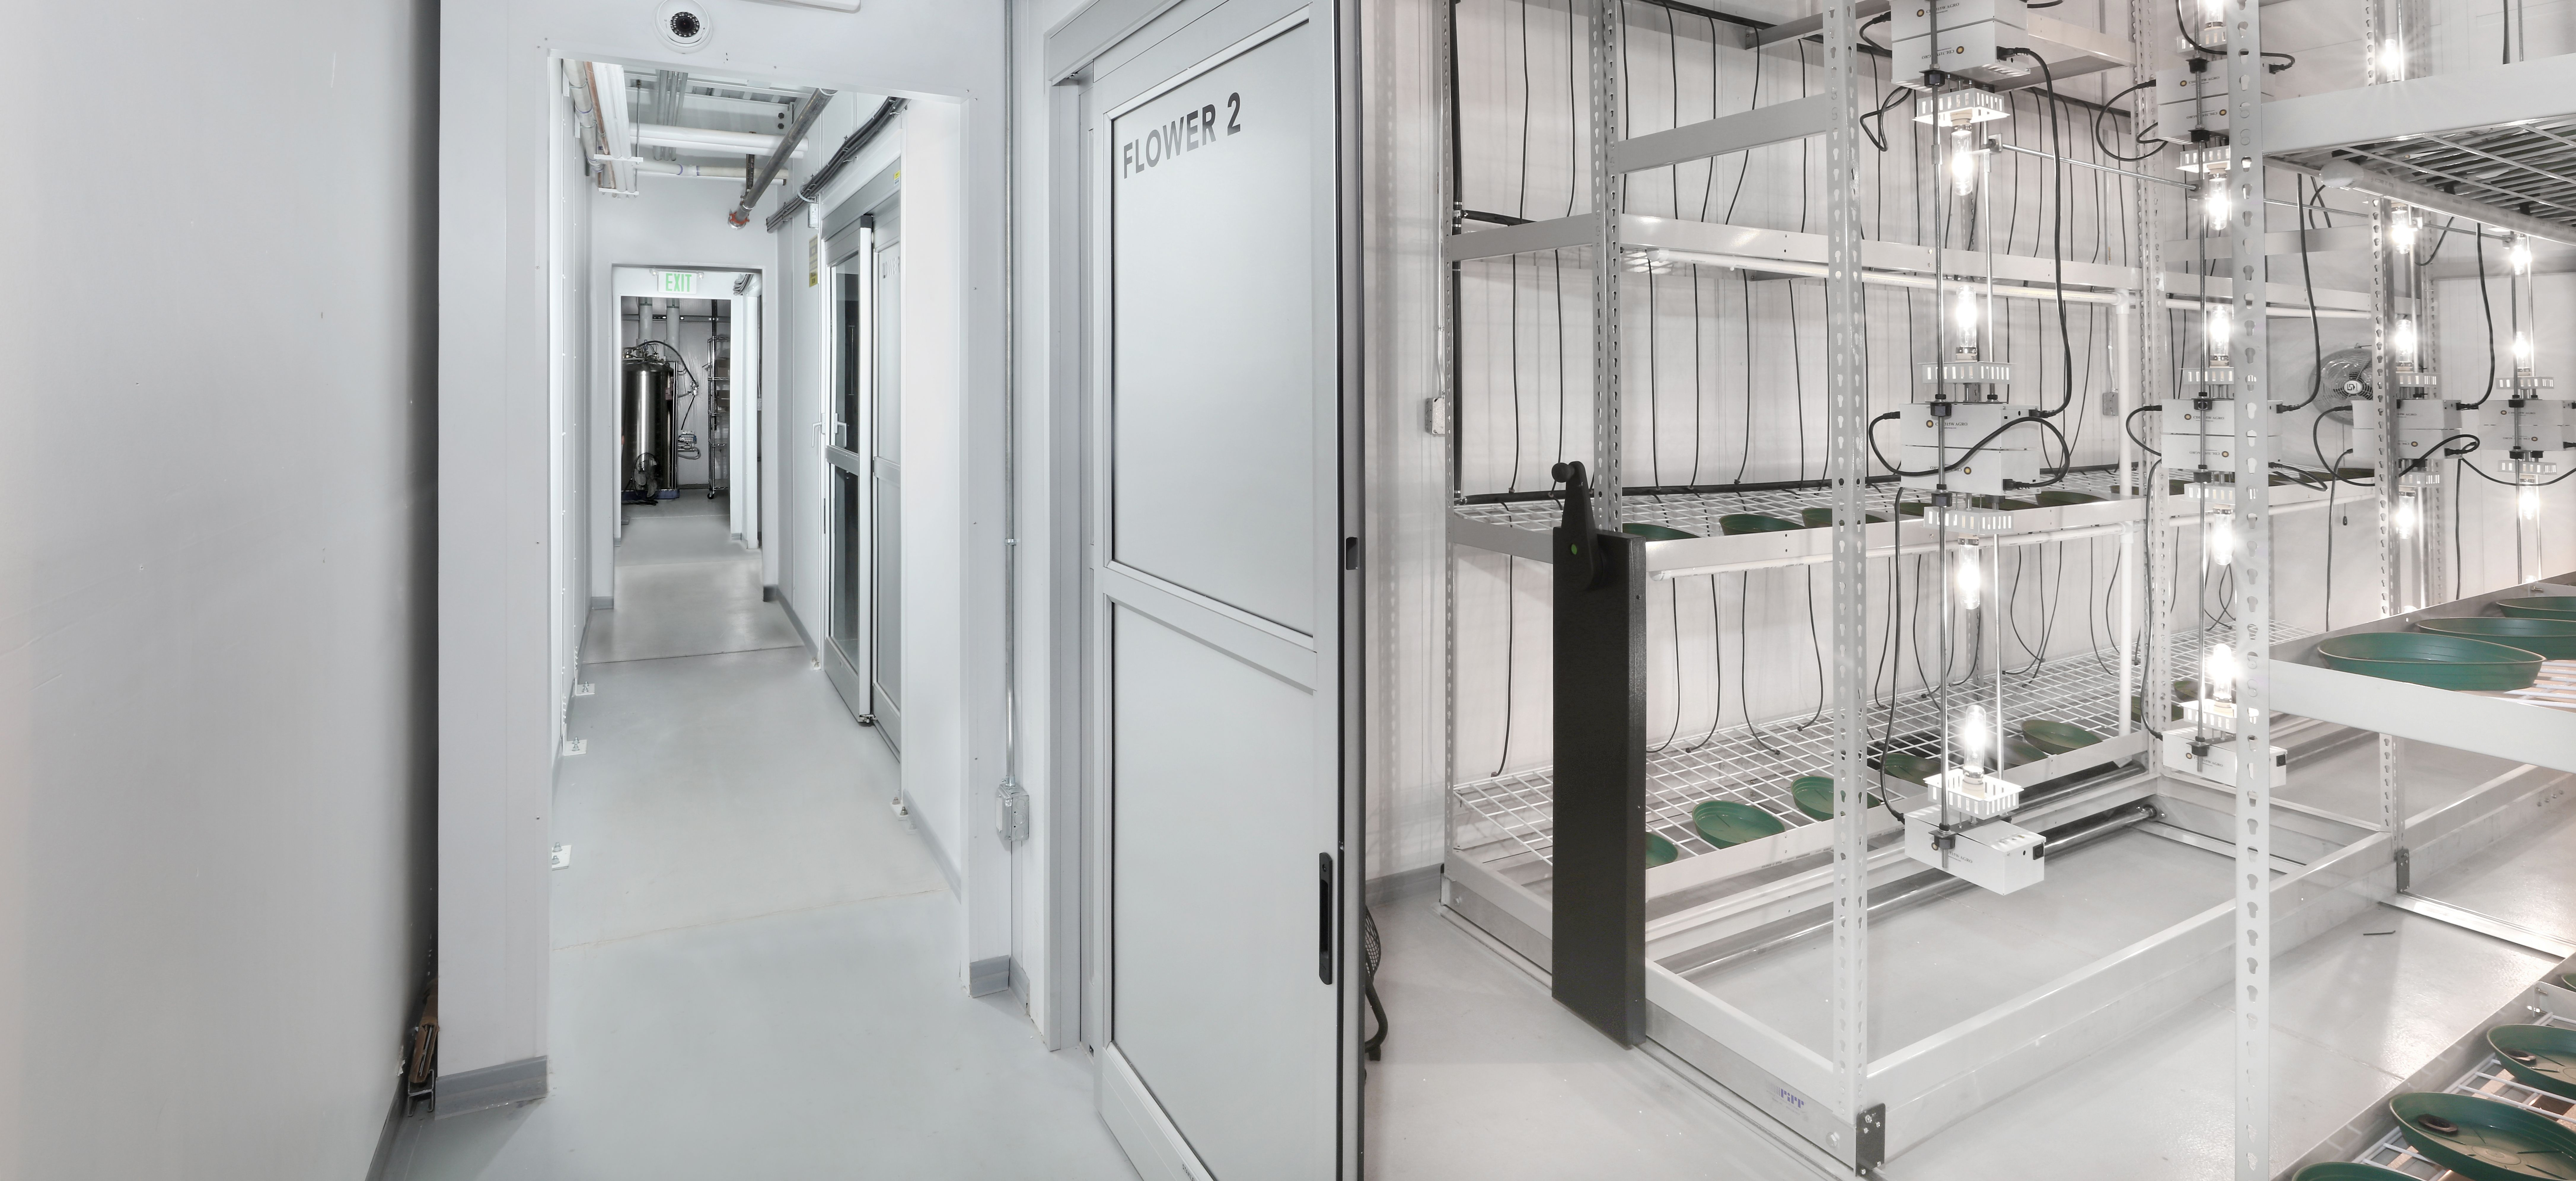 Flowering Room for Cannabis Cultivation - PortaFab Modular Cleanrooms